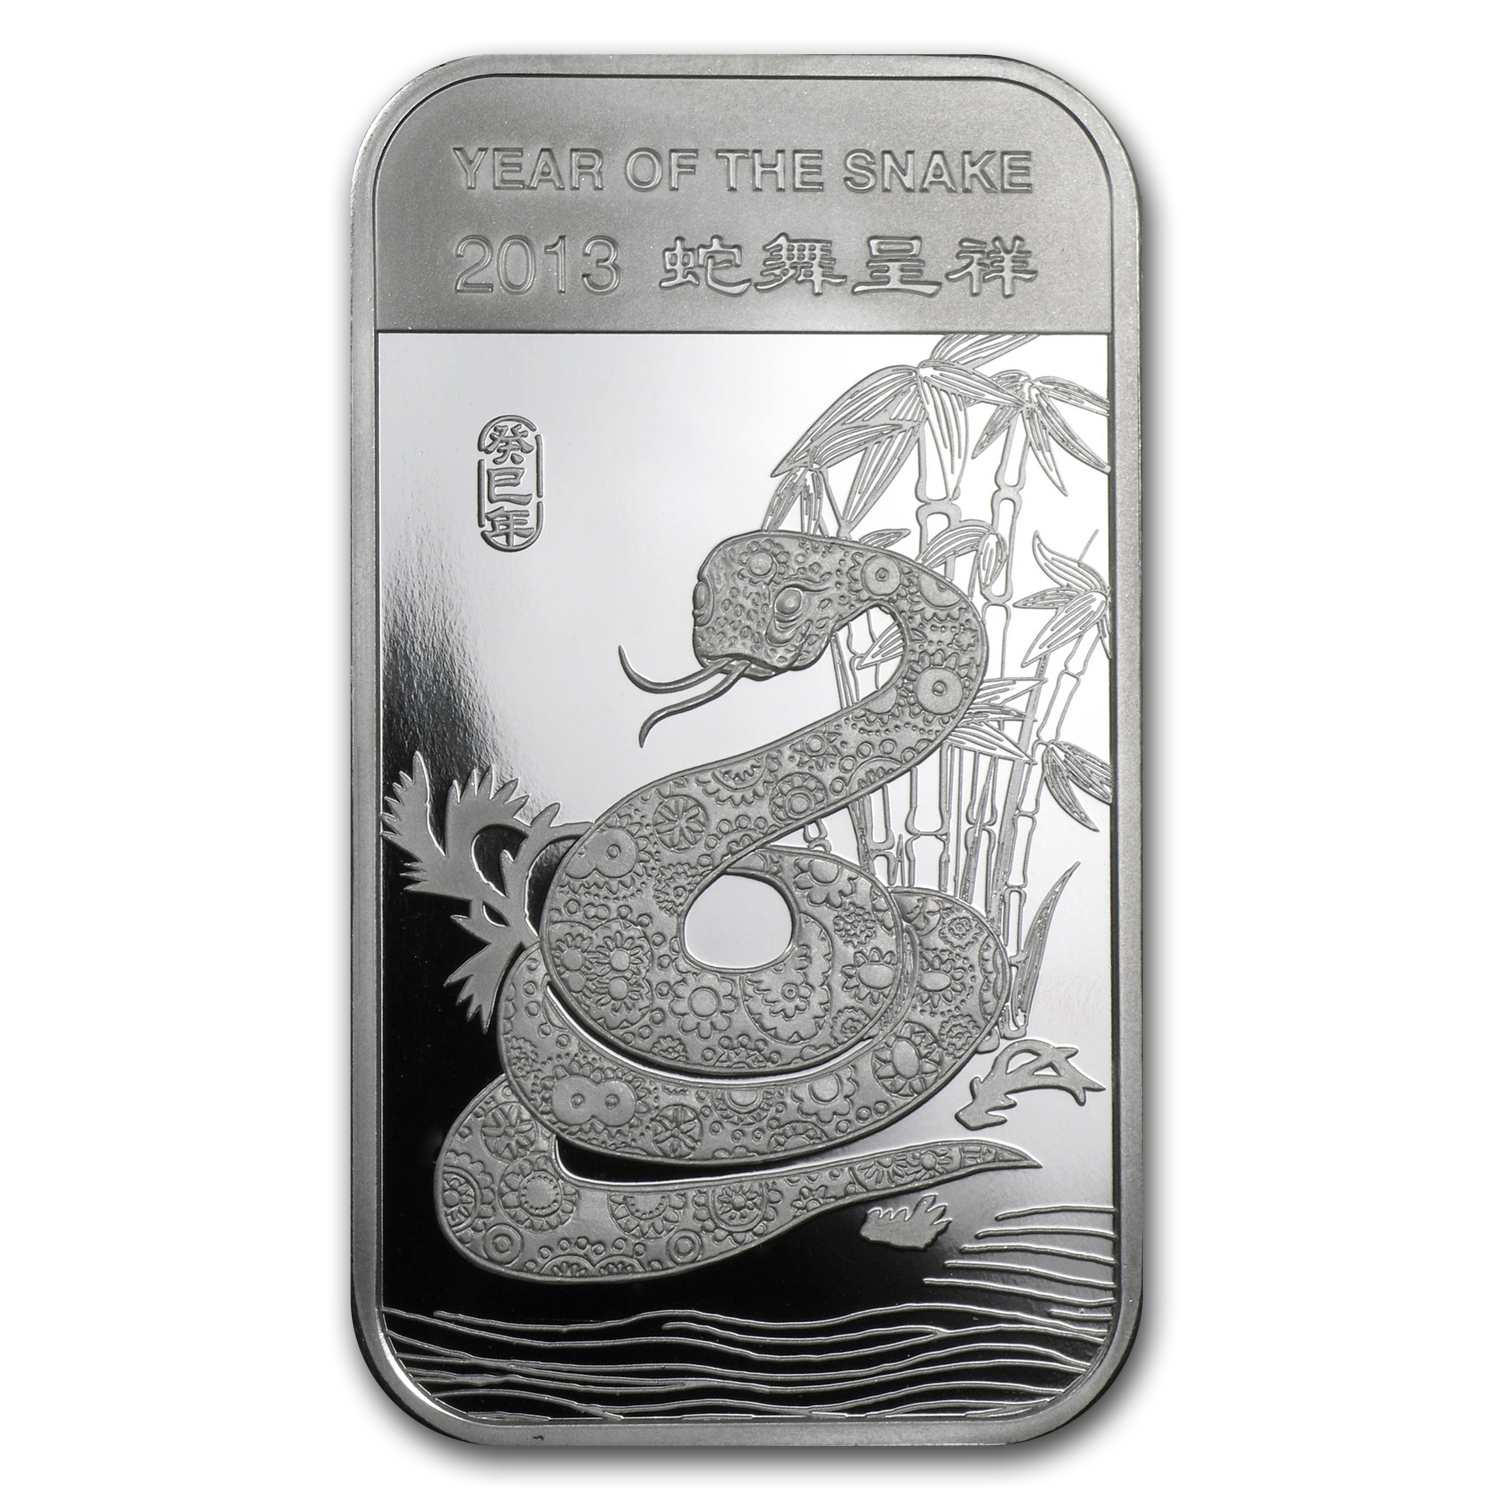 1 oz Silver Bars - APMEX (2013 Year of the Snake)